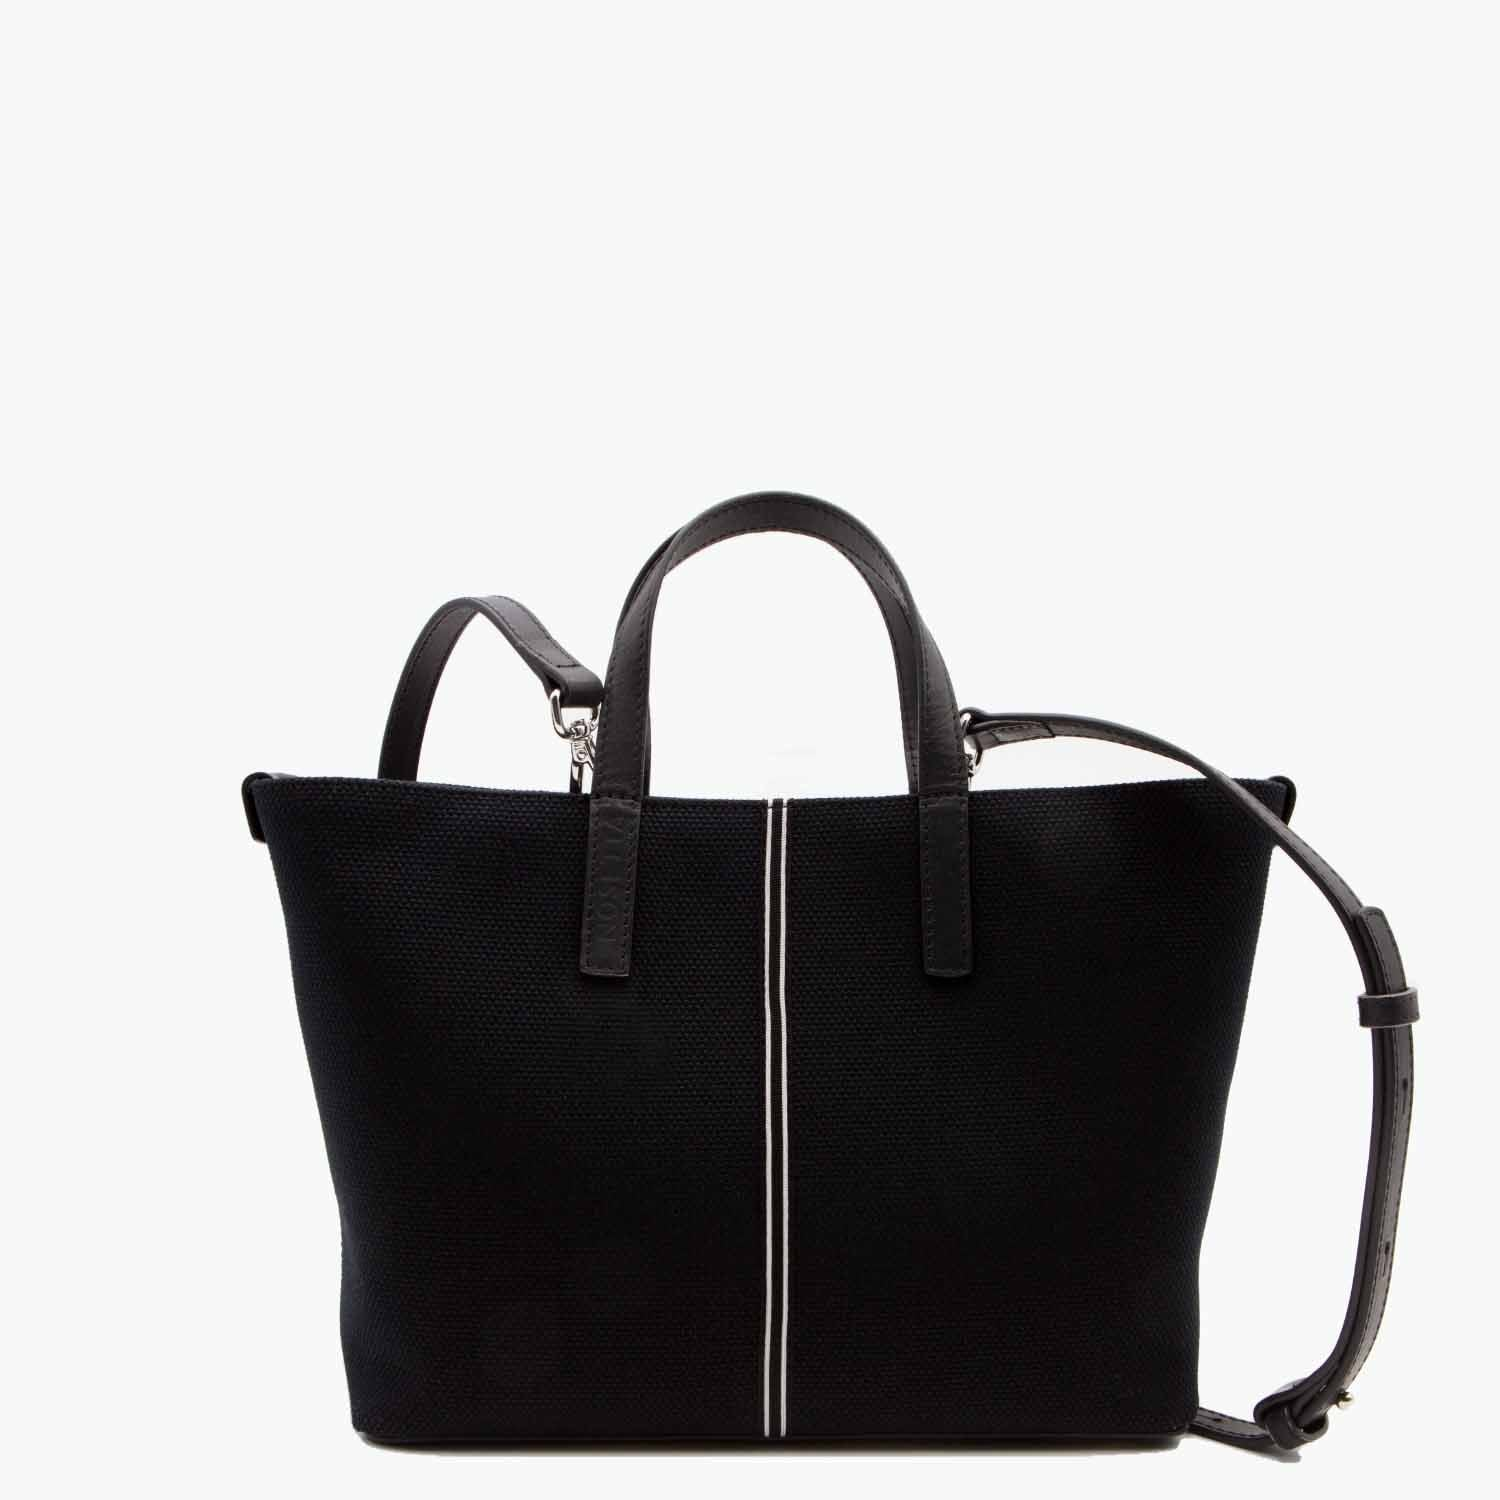 Carlia Small Tote Cotton Canvas and Leather - Nosetta